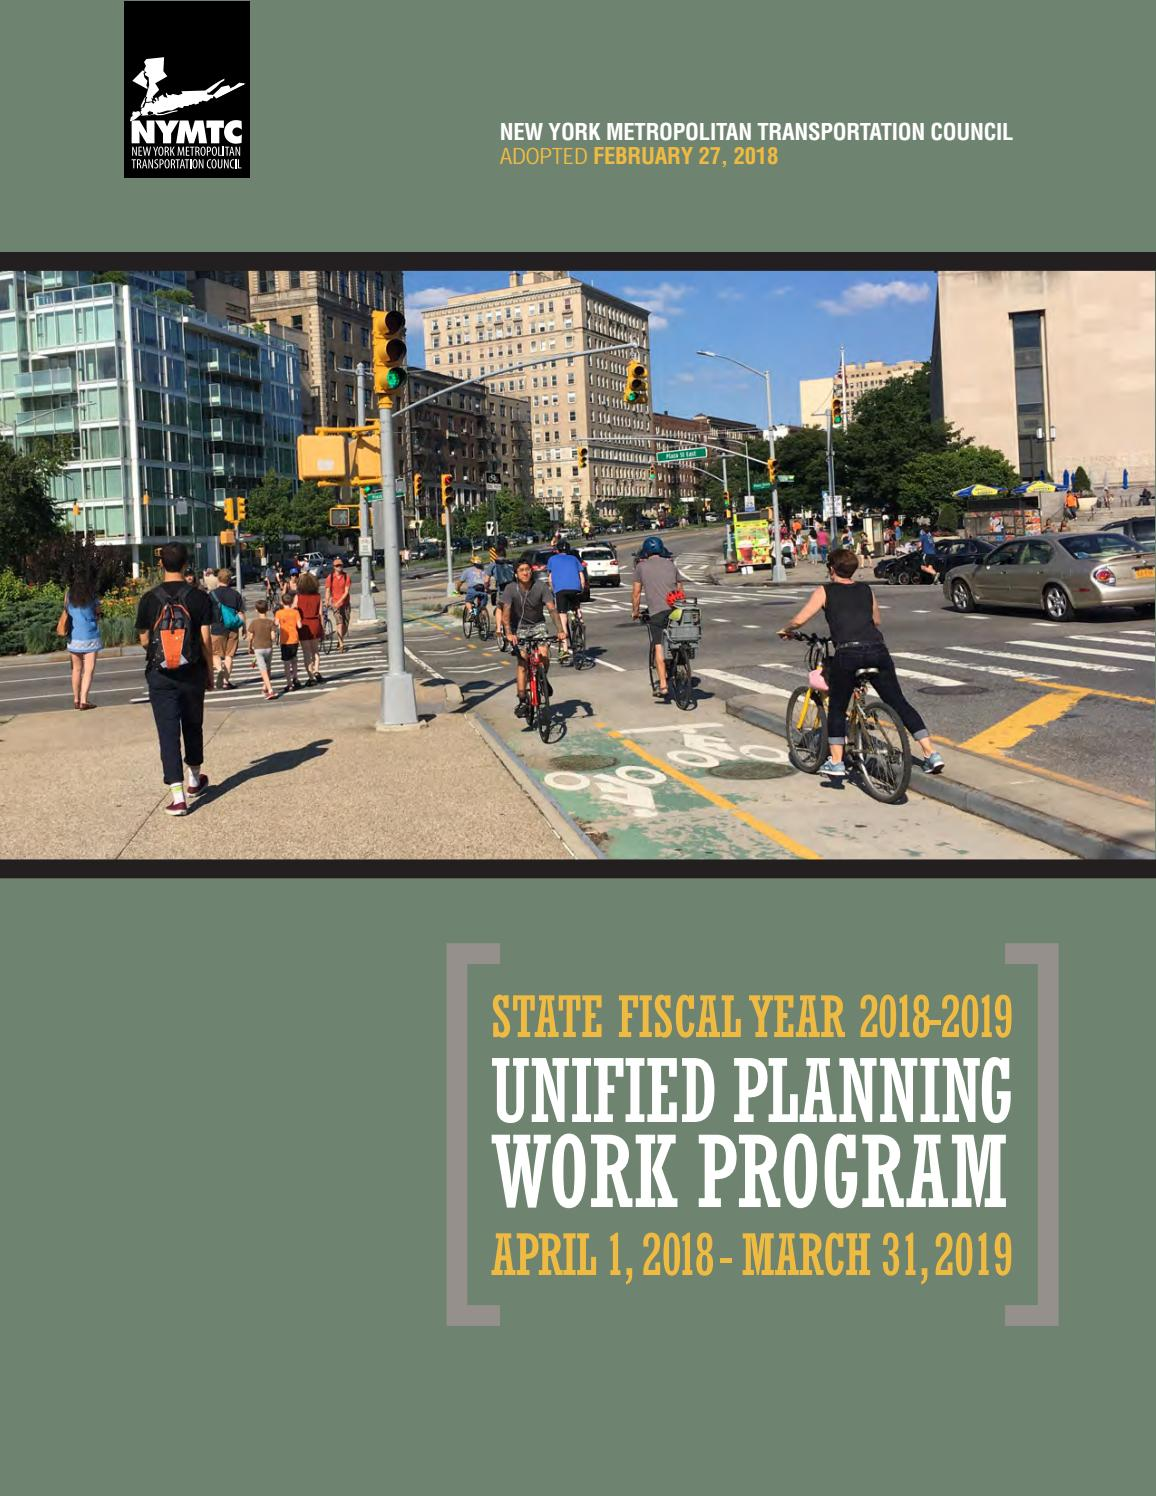 NYMTC's 2018-2019 Unified Planning Work Program by New York